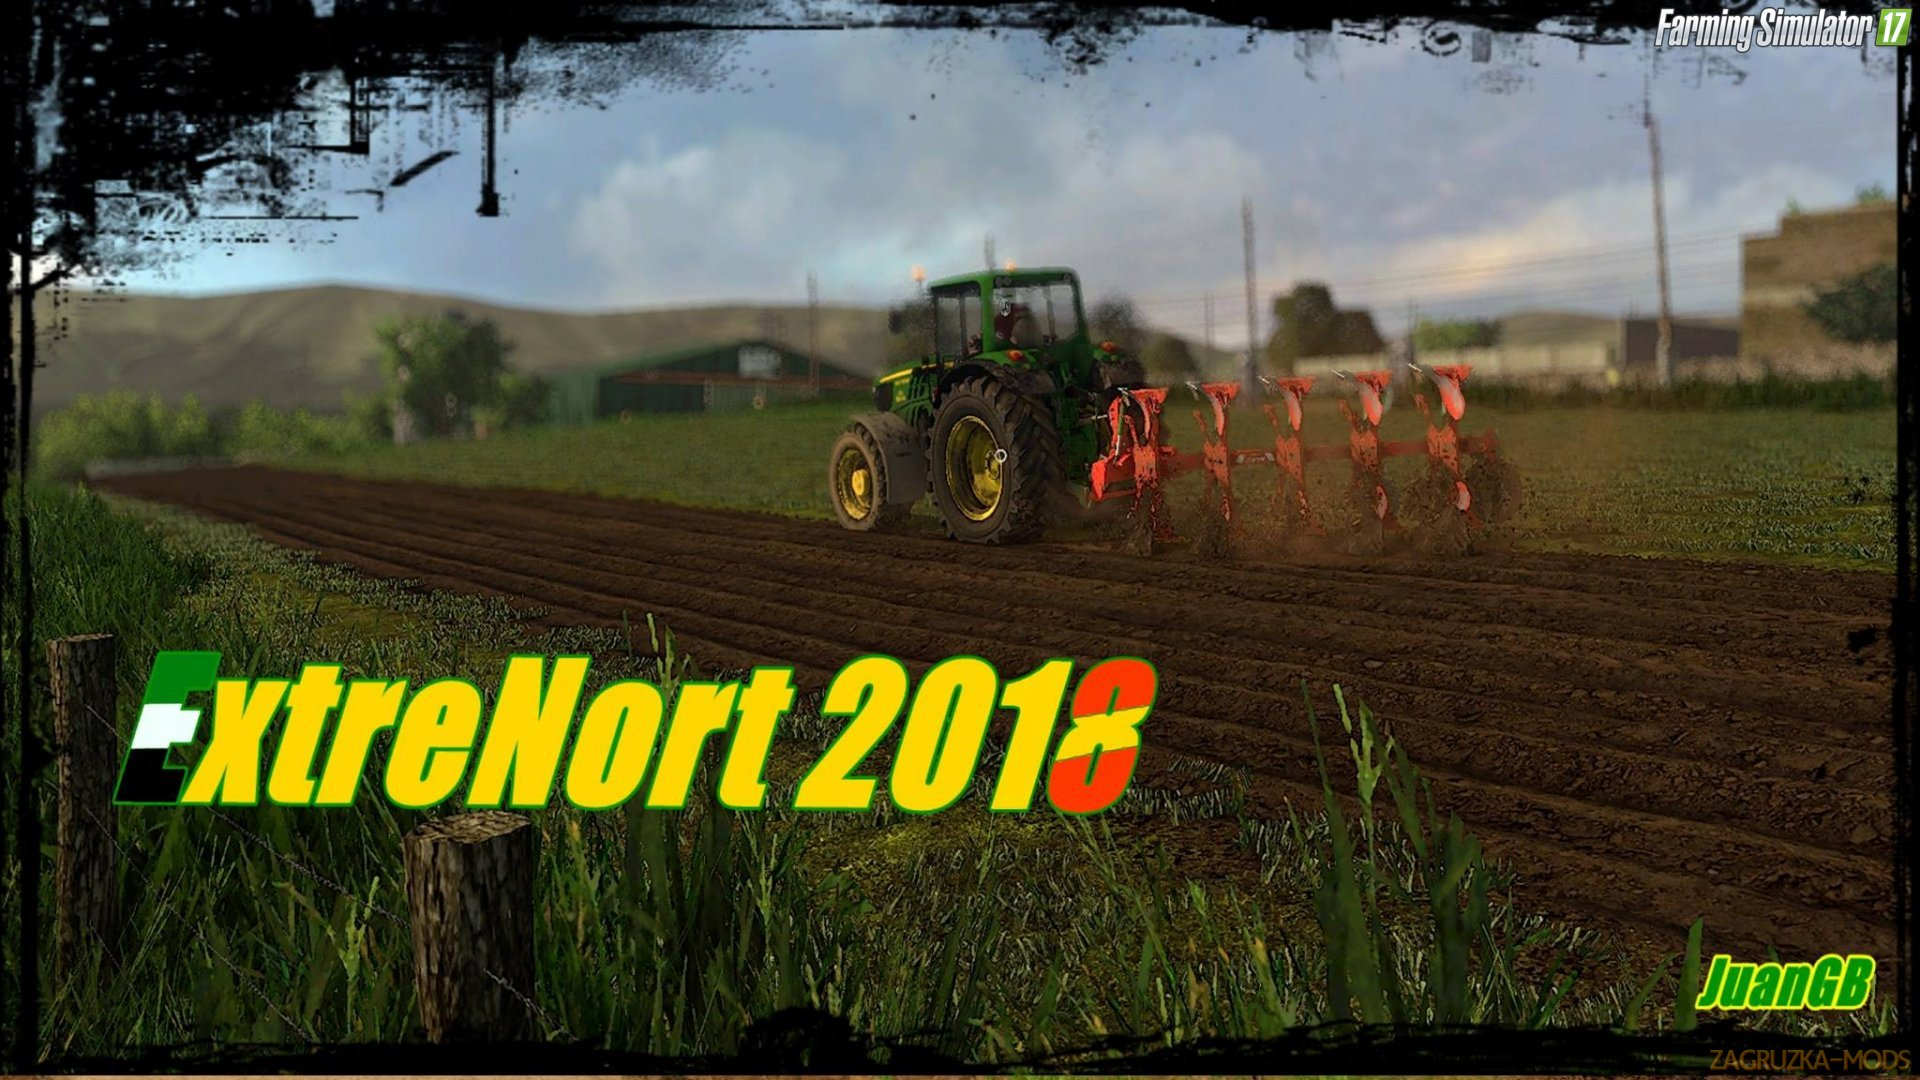 ExtreNort Map 2018 v1.0 by JuanGB for FS 17